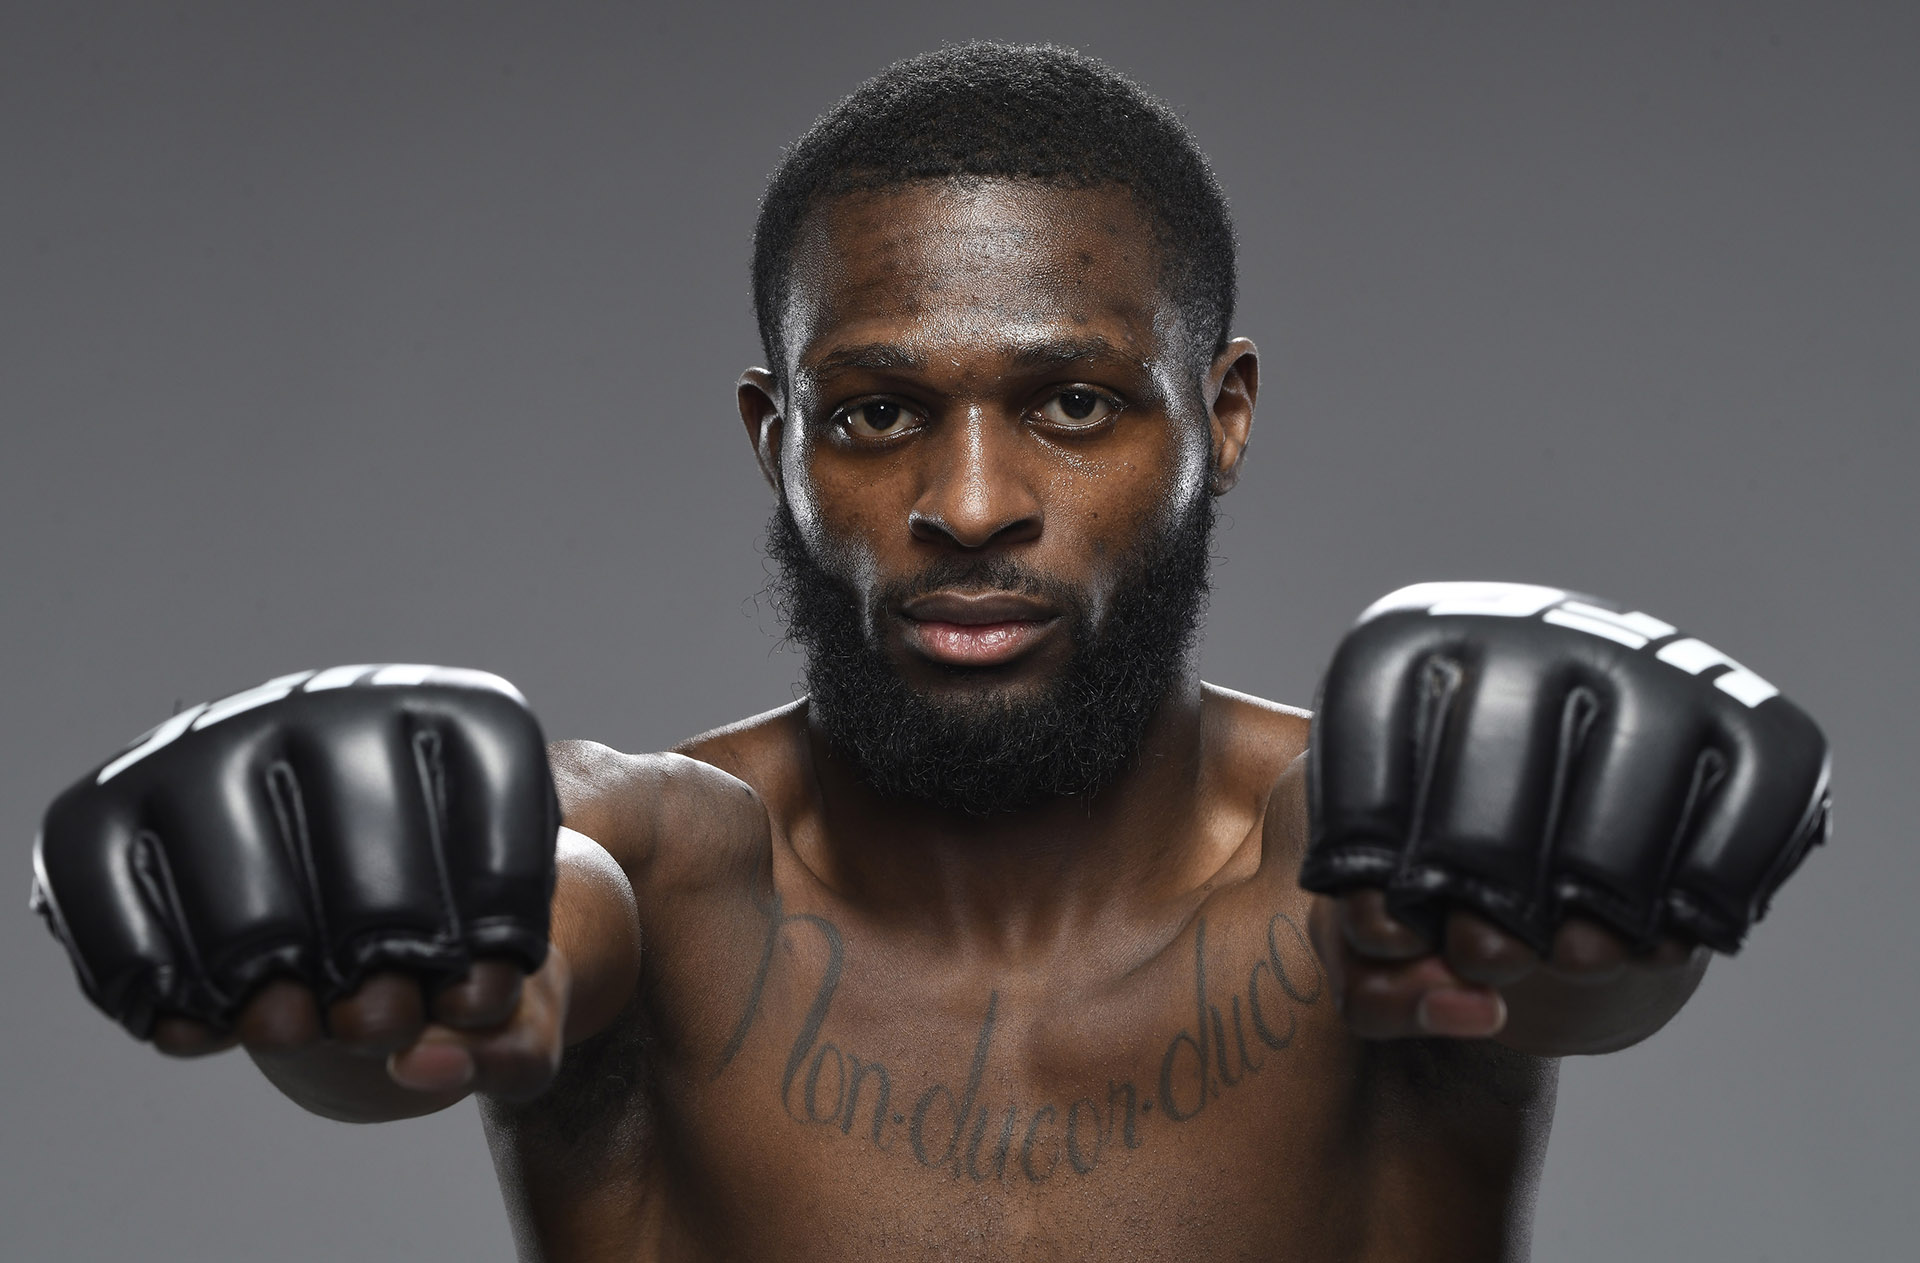 Montel Jackson poses for a portrait after his victory during the UFC Fight Night event at UFC APEX on March 20, 2021 in Las Vegas, Nevada. (Photo by Mike Roach/Zuffa LLC)